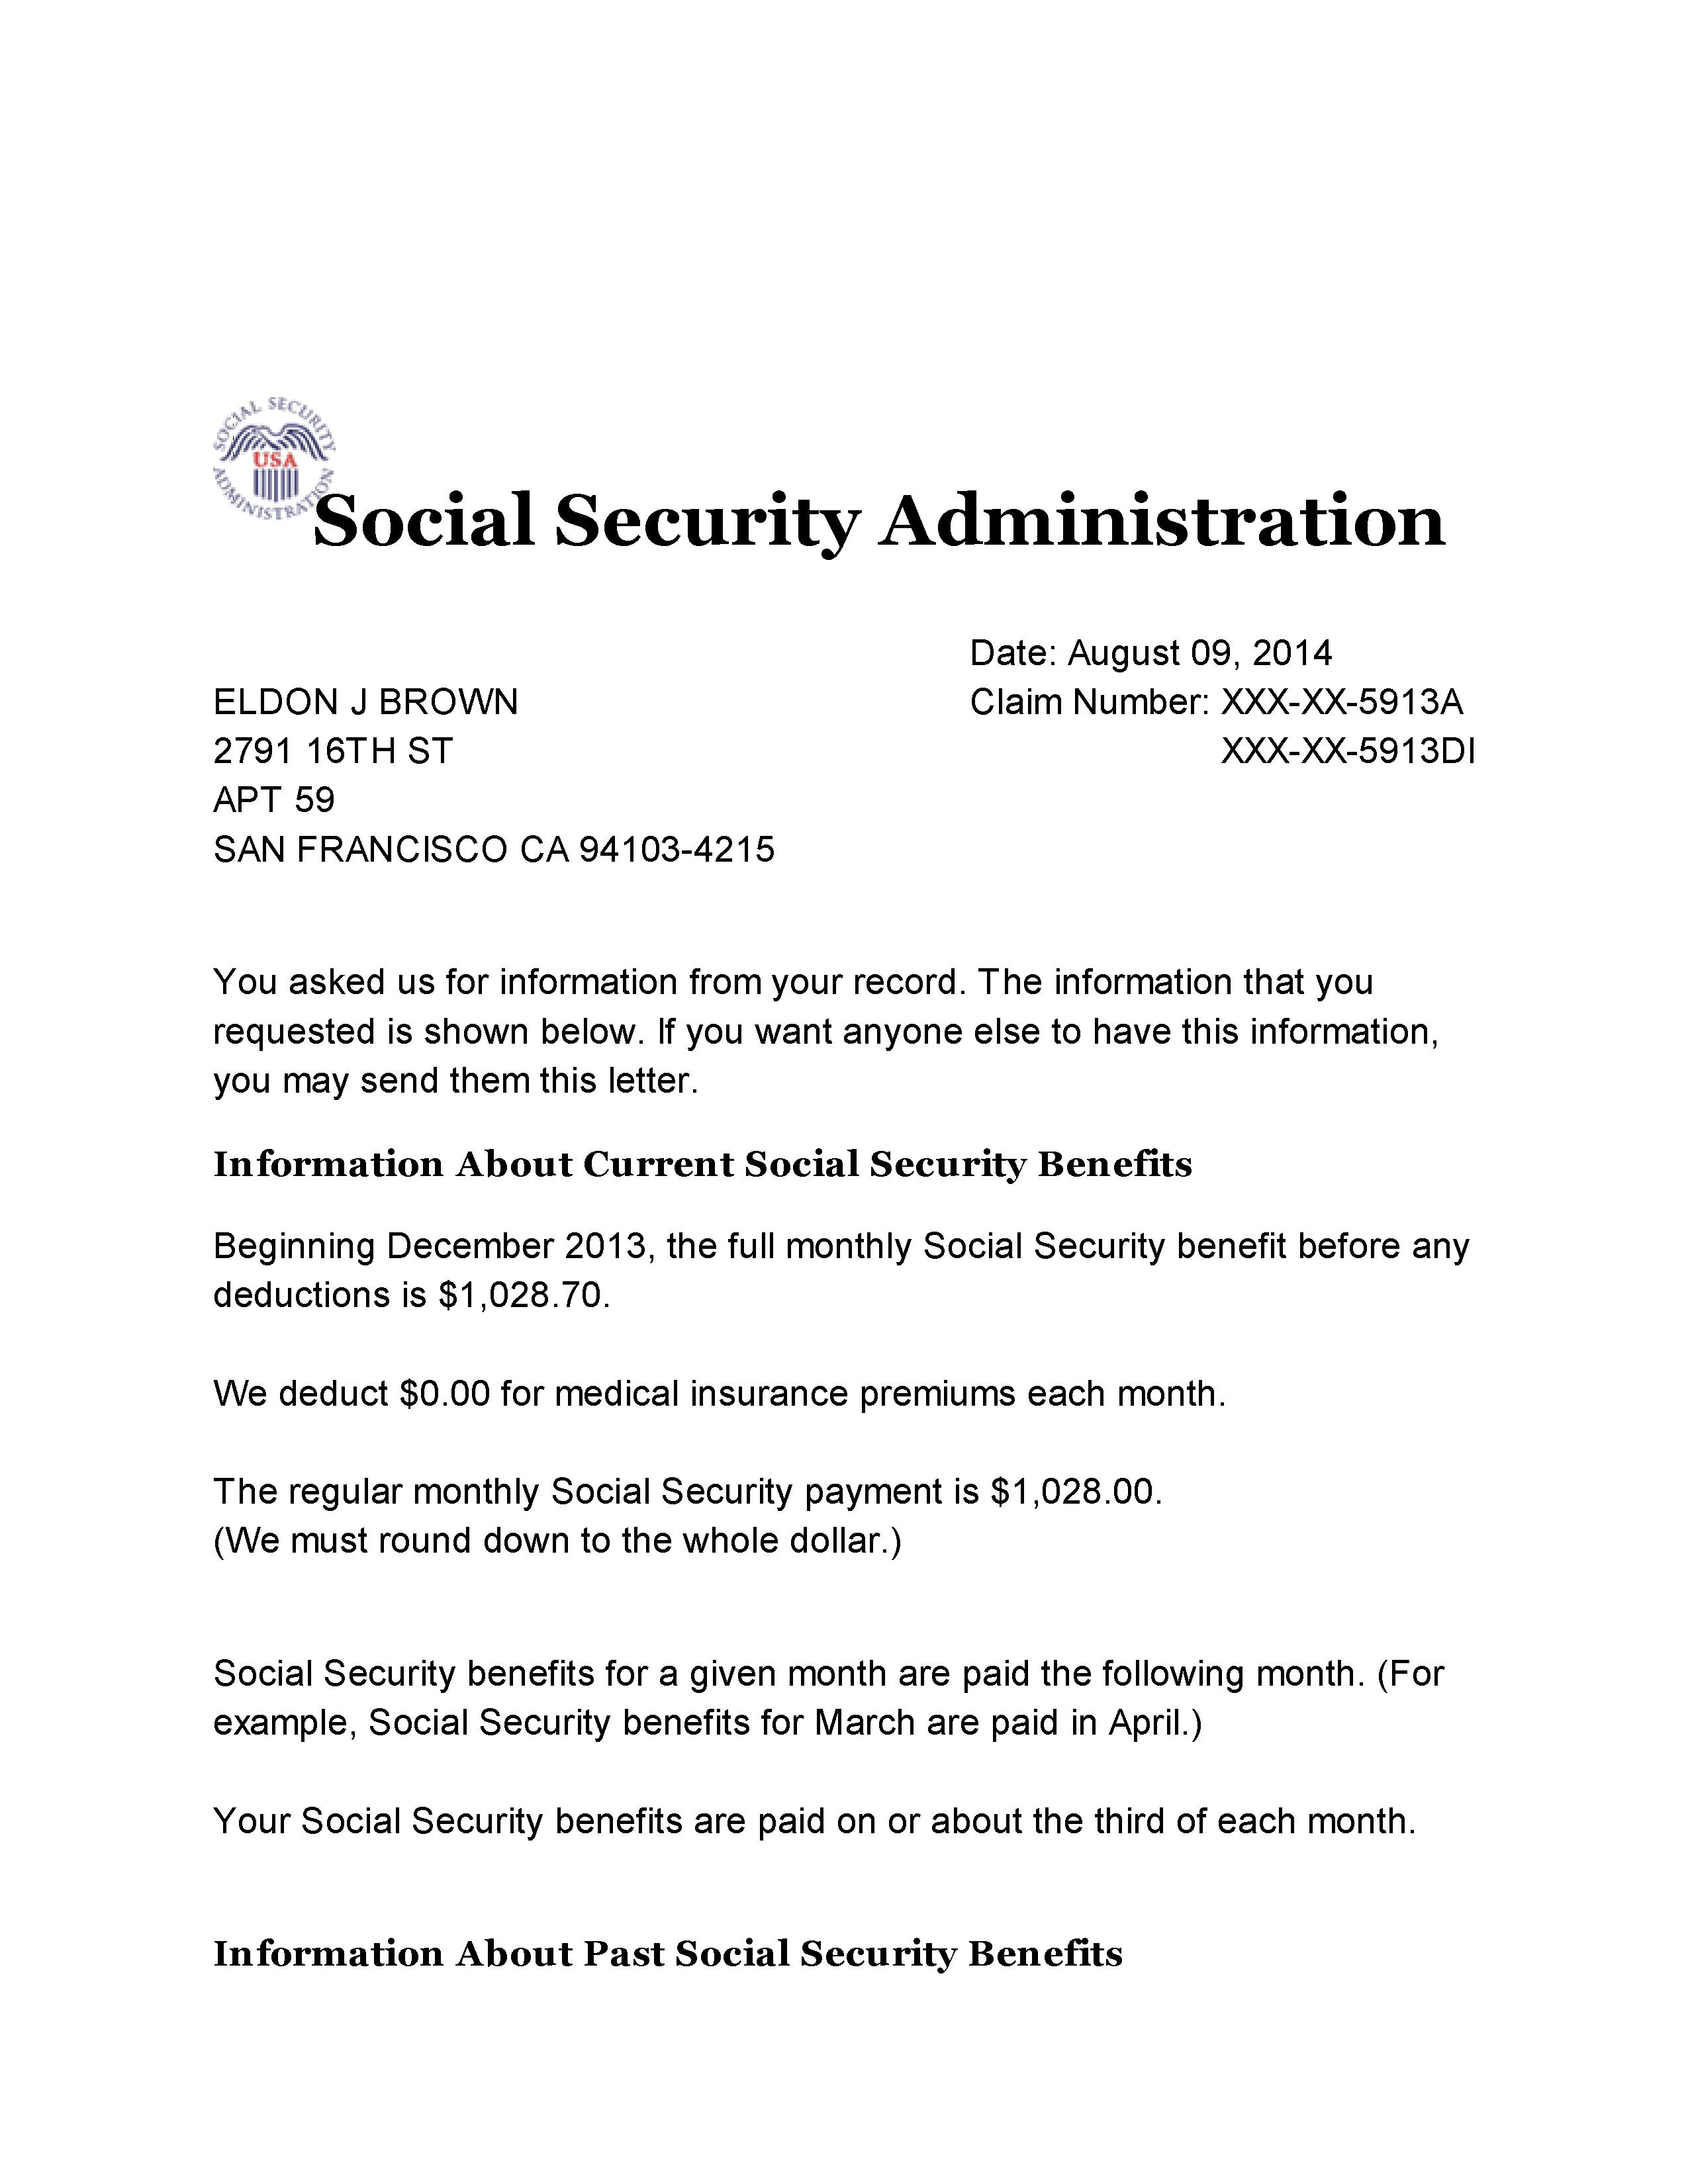 Social Security Benefits Verification Letter 001